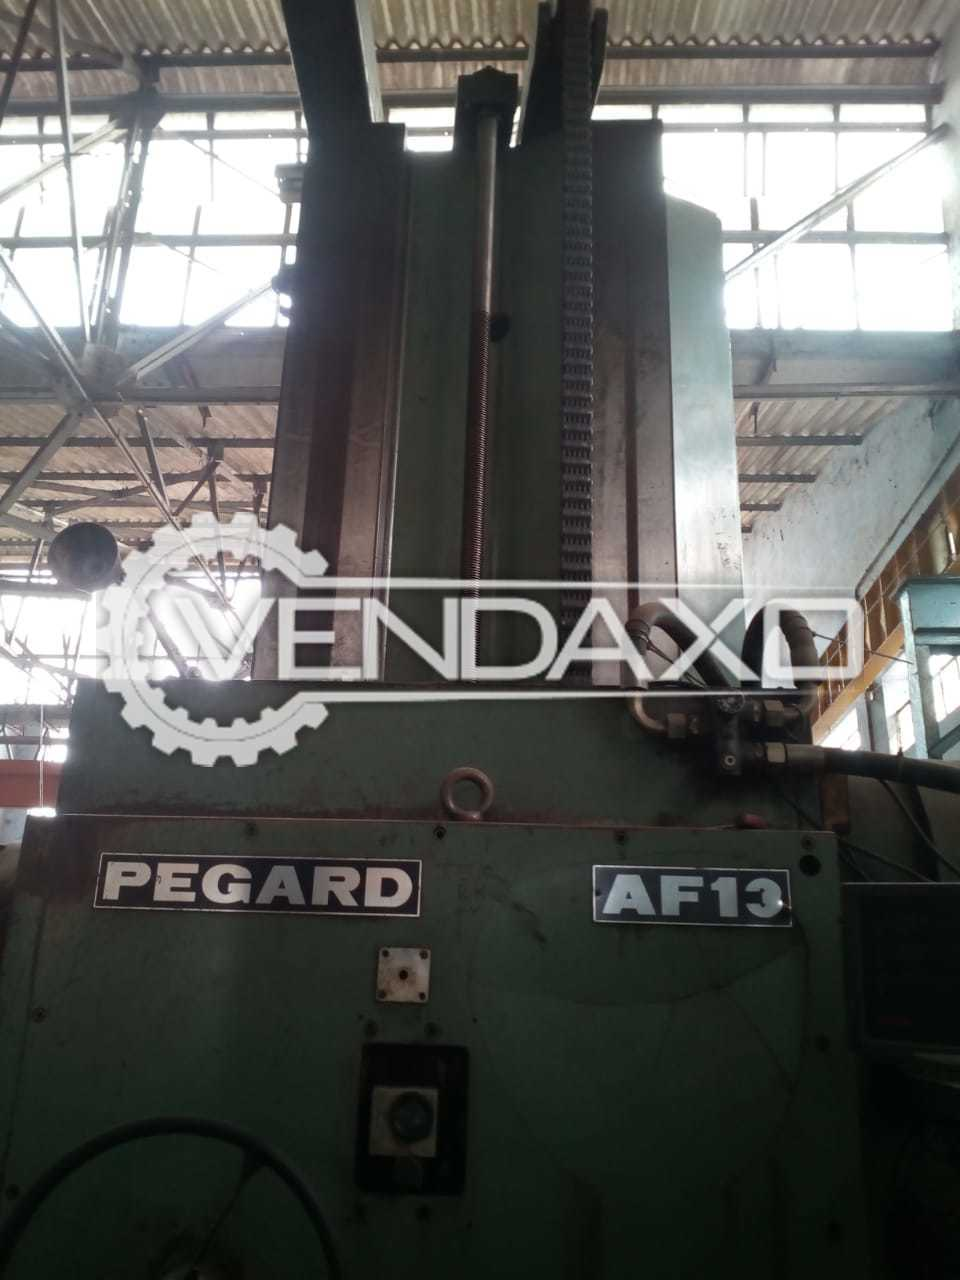 Pegard AF-13 Horizontal Boring Machine - 125 Spindle